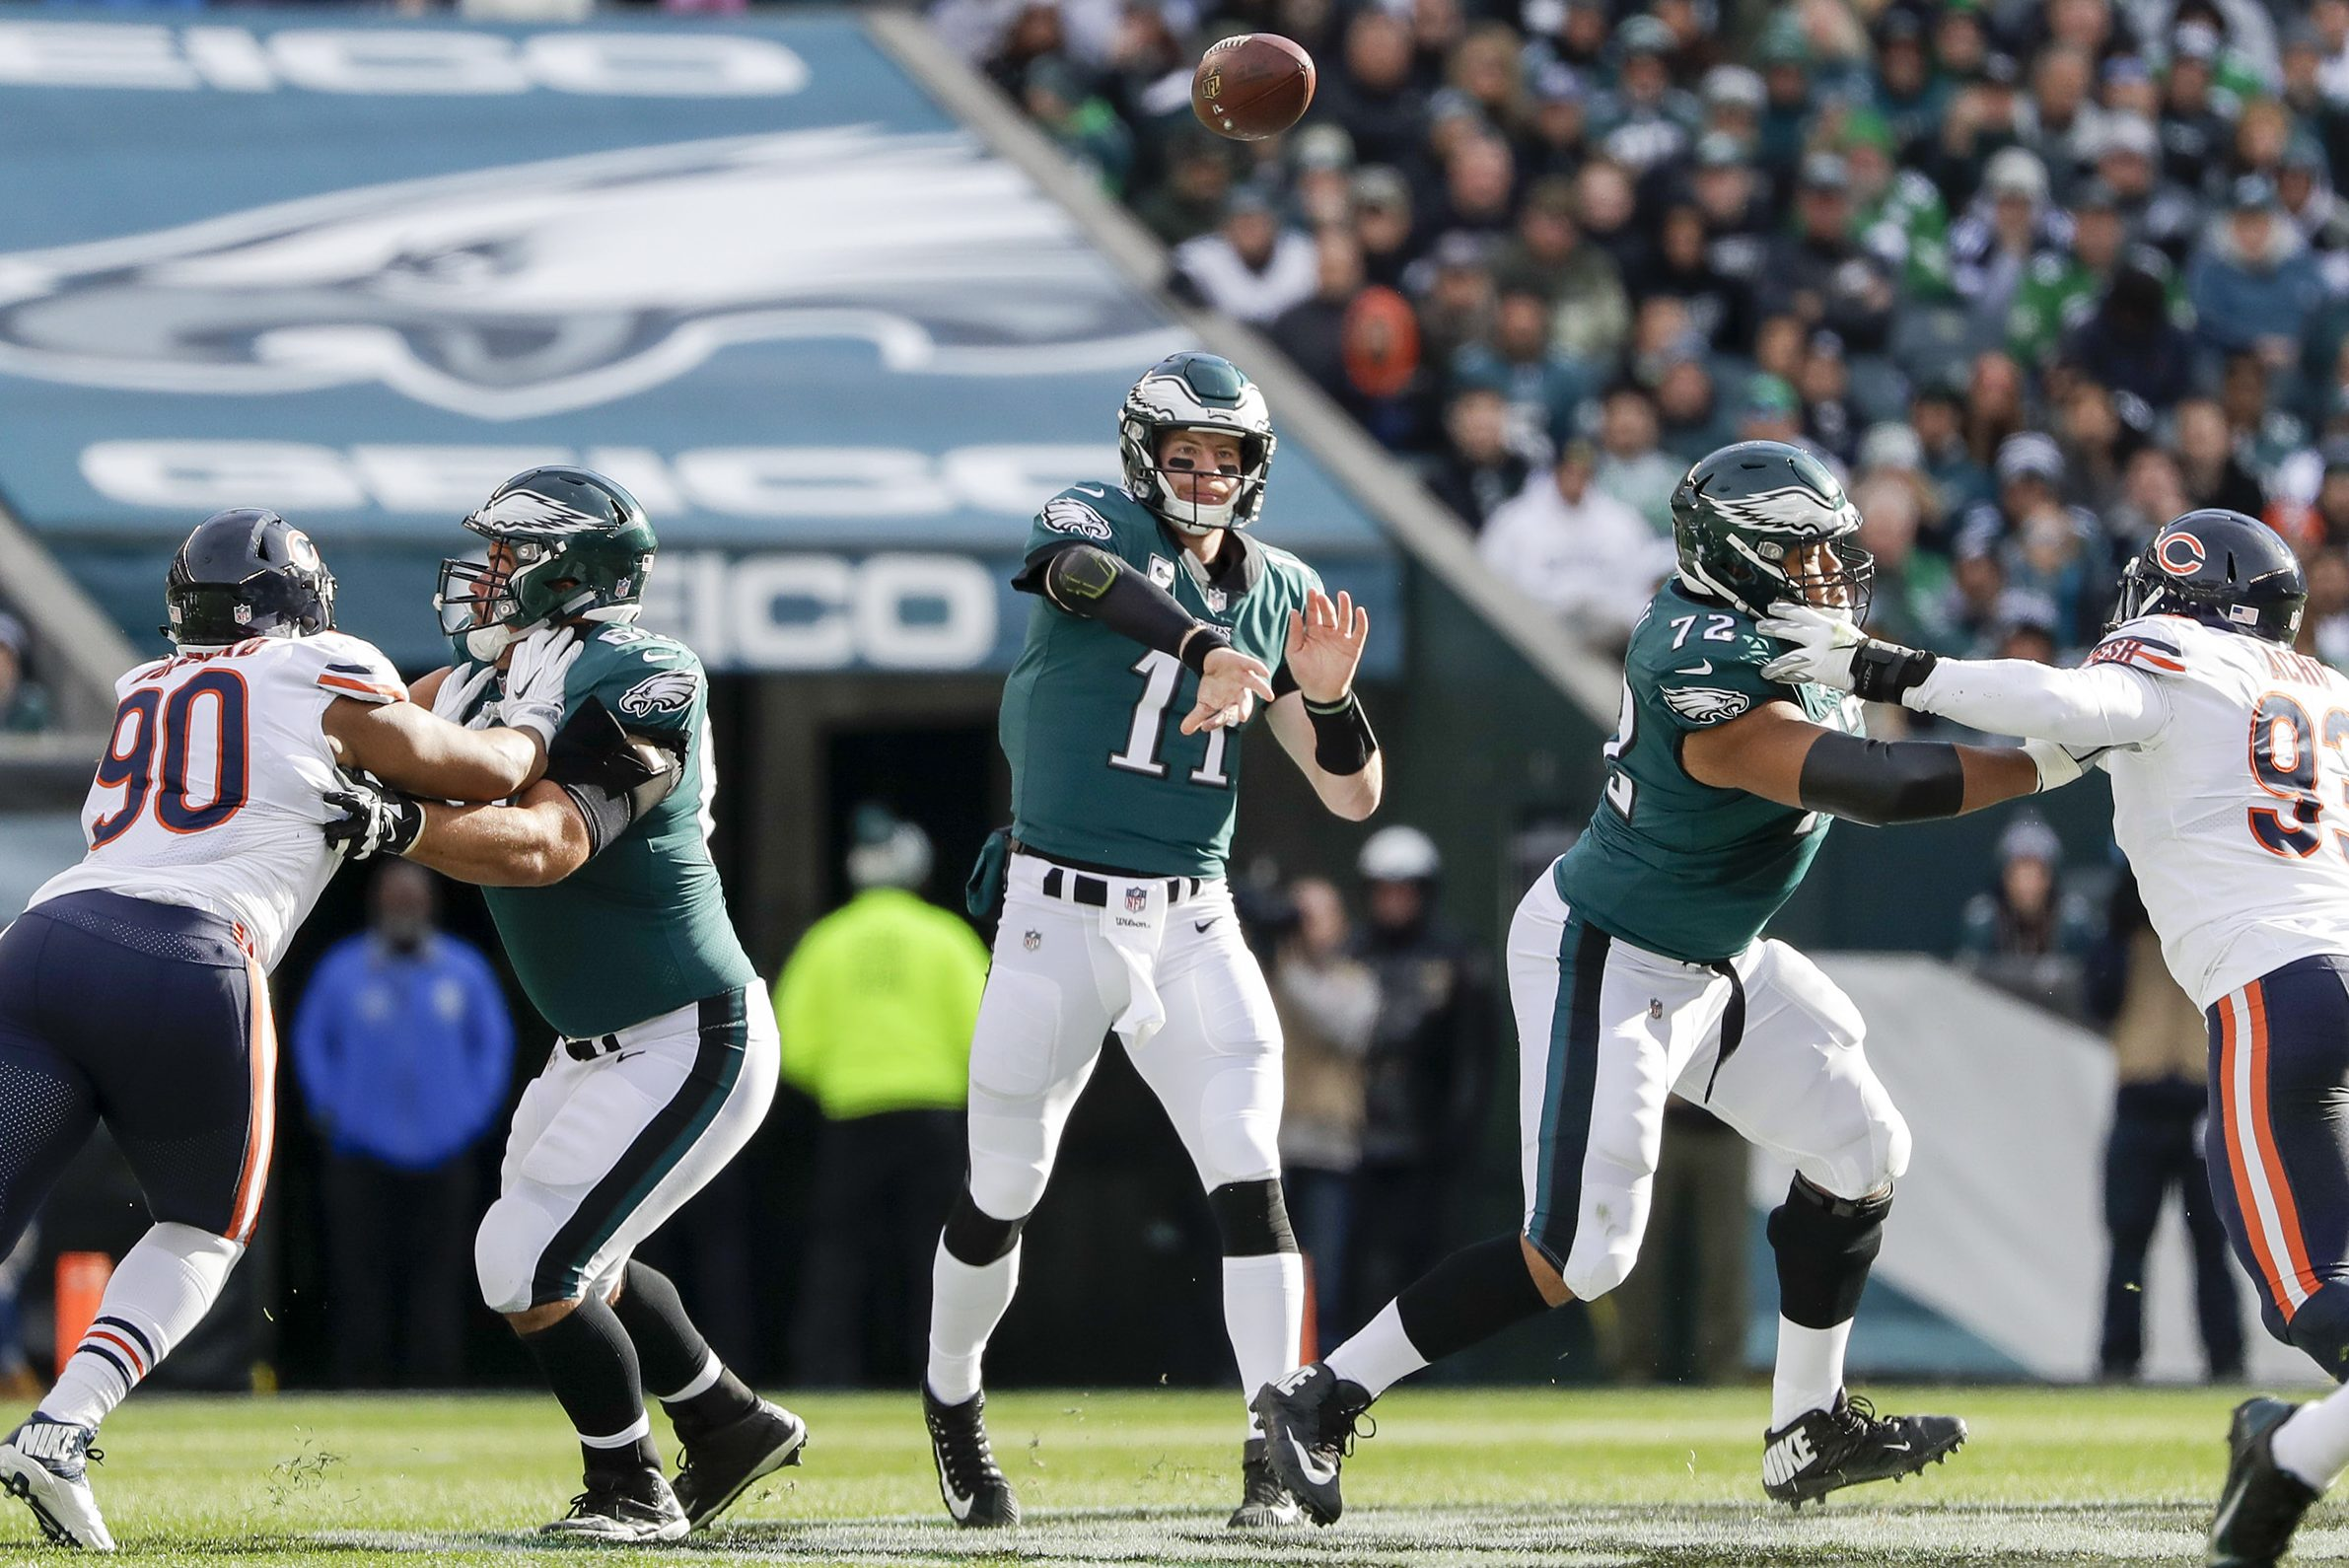 Eagles quarterback Carson Wentz throws a first-quarter pass as offensive linemen Stefen Wisniewski and Halapoulivaati Vaitai block Chicago Bears defensive end Jonathan Bullard (left) and outside linebacker Sam Acho (right) on Sunday.